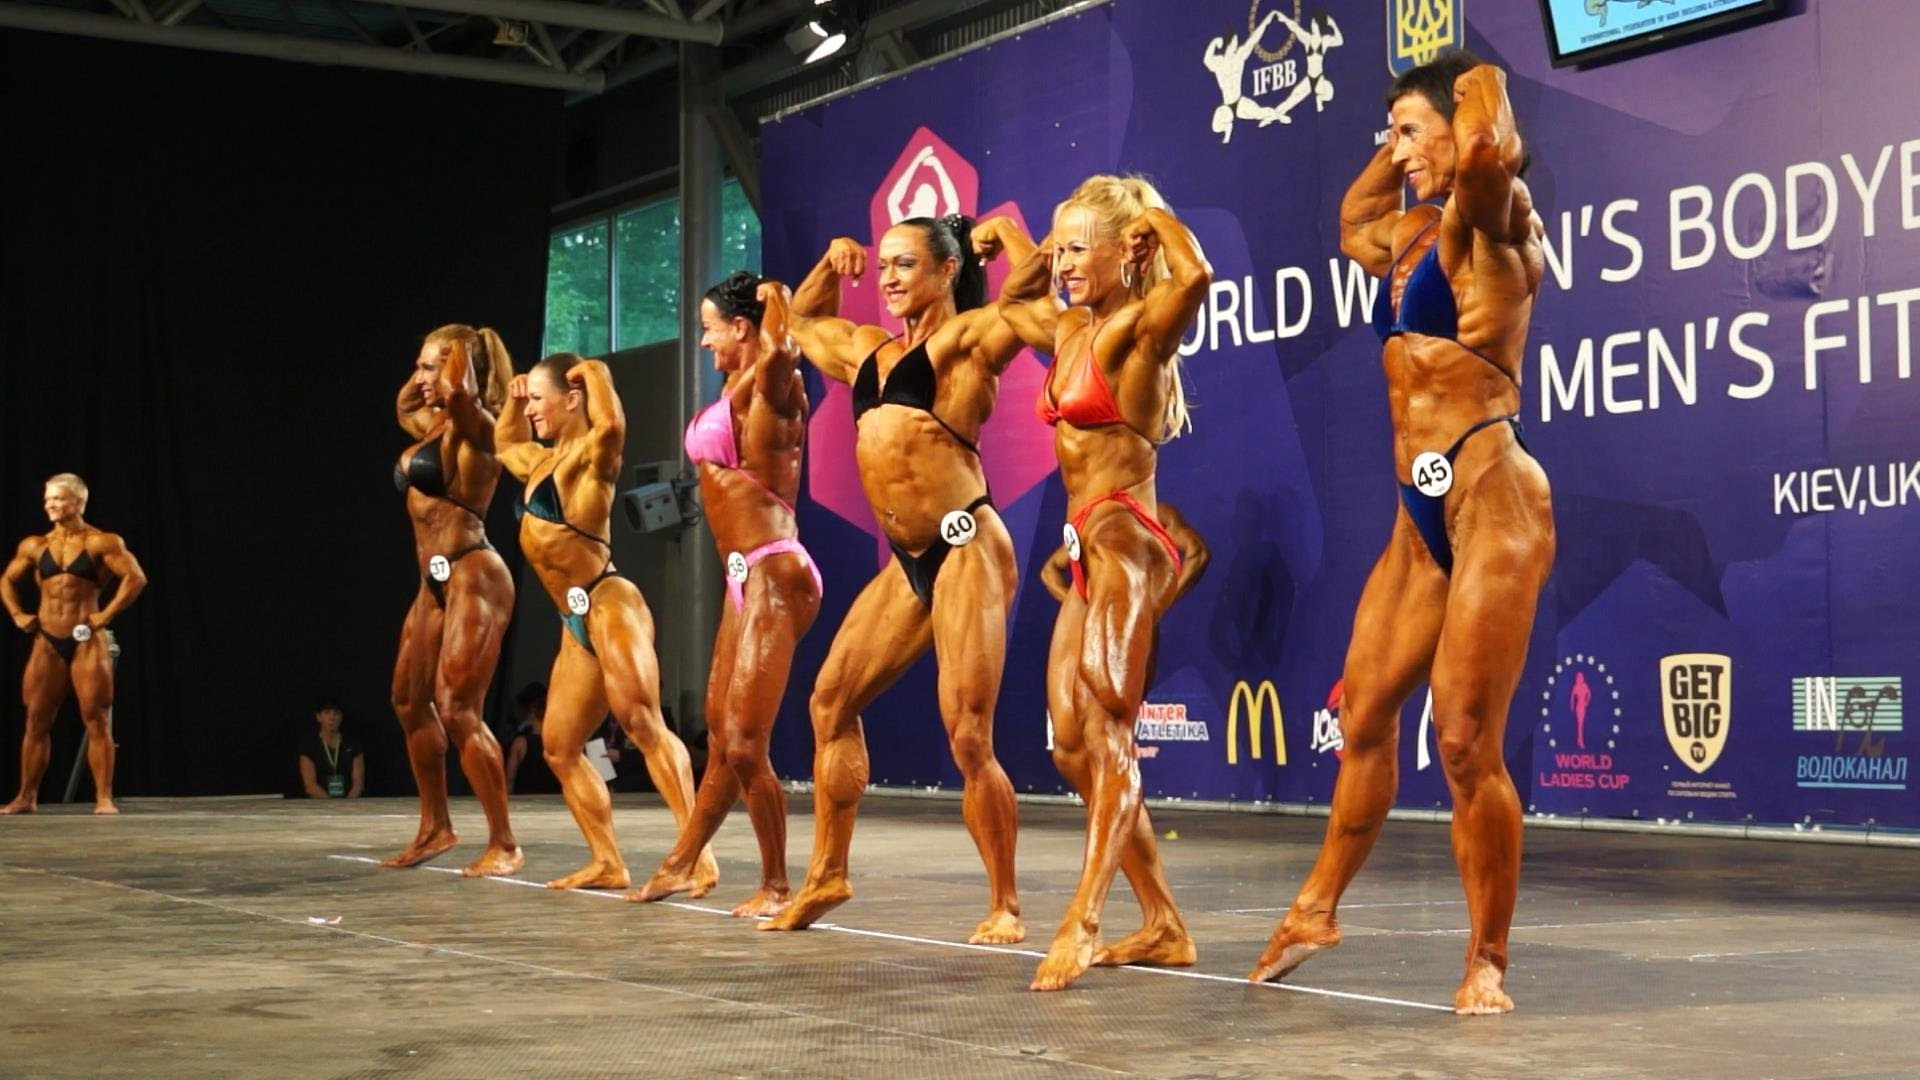 IFBB World Women's Bodybuilding Championship Kiev Ukraine 2013